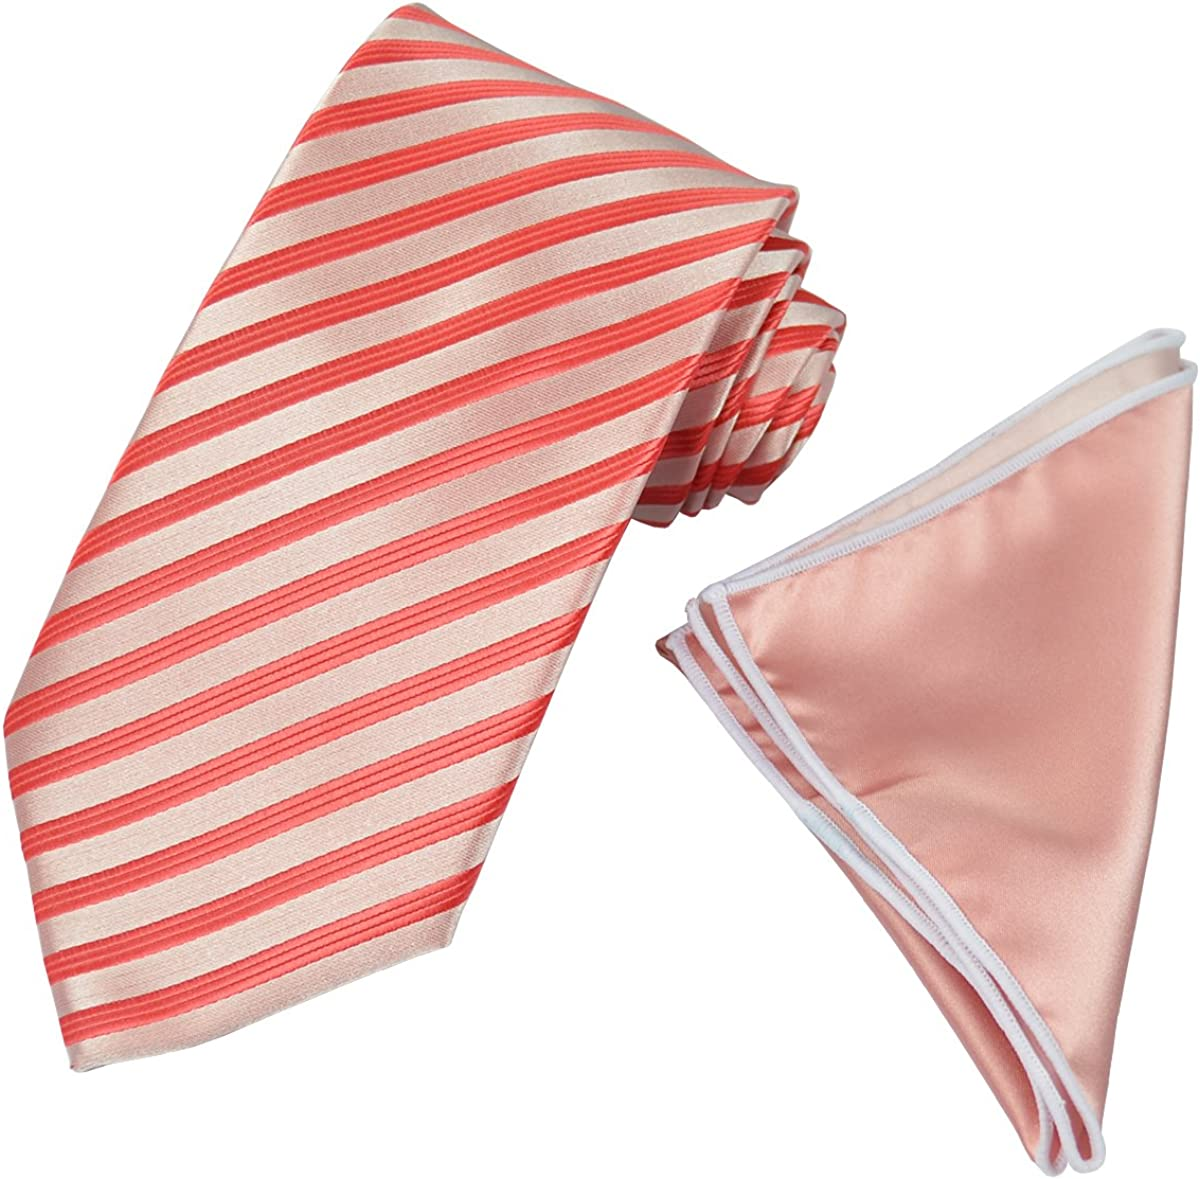 Red Striped Men's Tie with Contrast Pocket Square Set